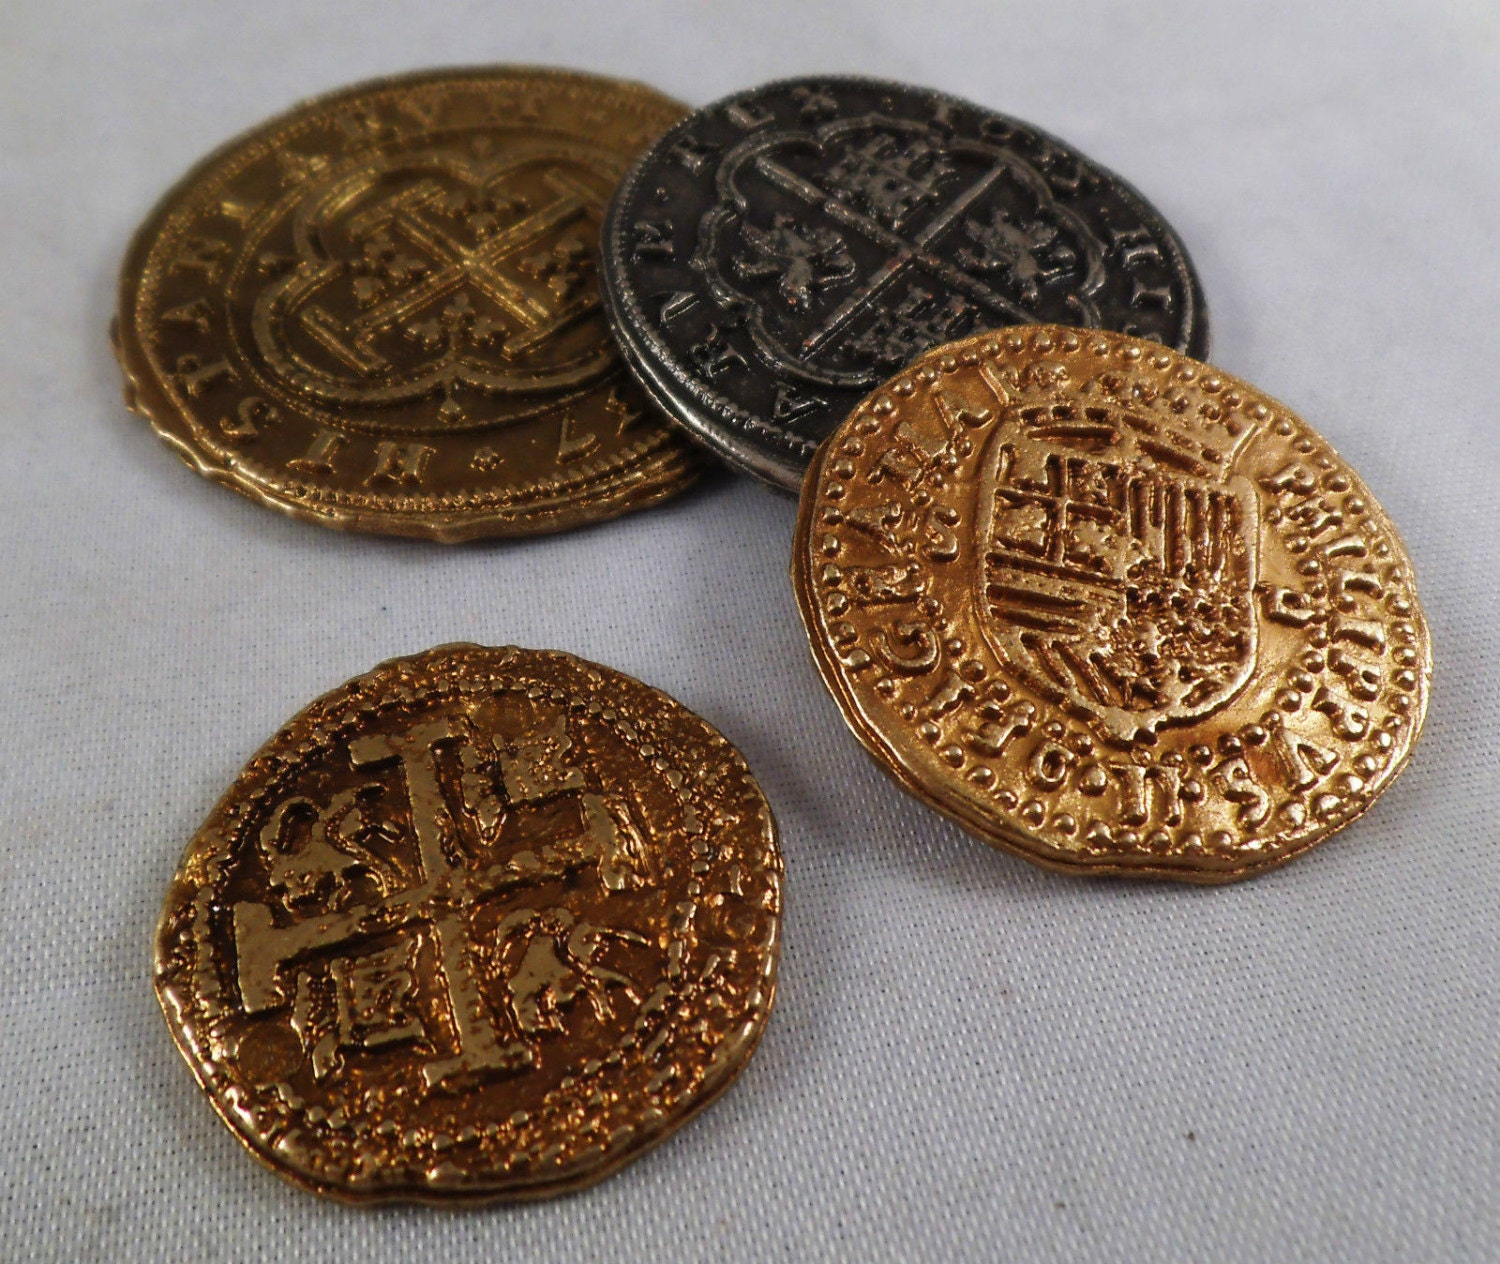 Set of 4 Mixed Spanish Armada Gold/Silver Doubloons  -Coins/Pirates/Treasure/Gift Replicas